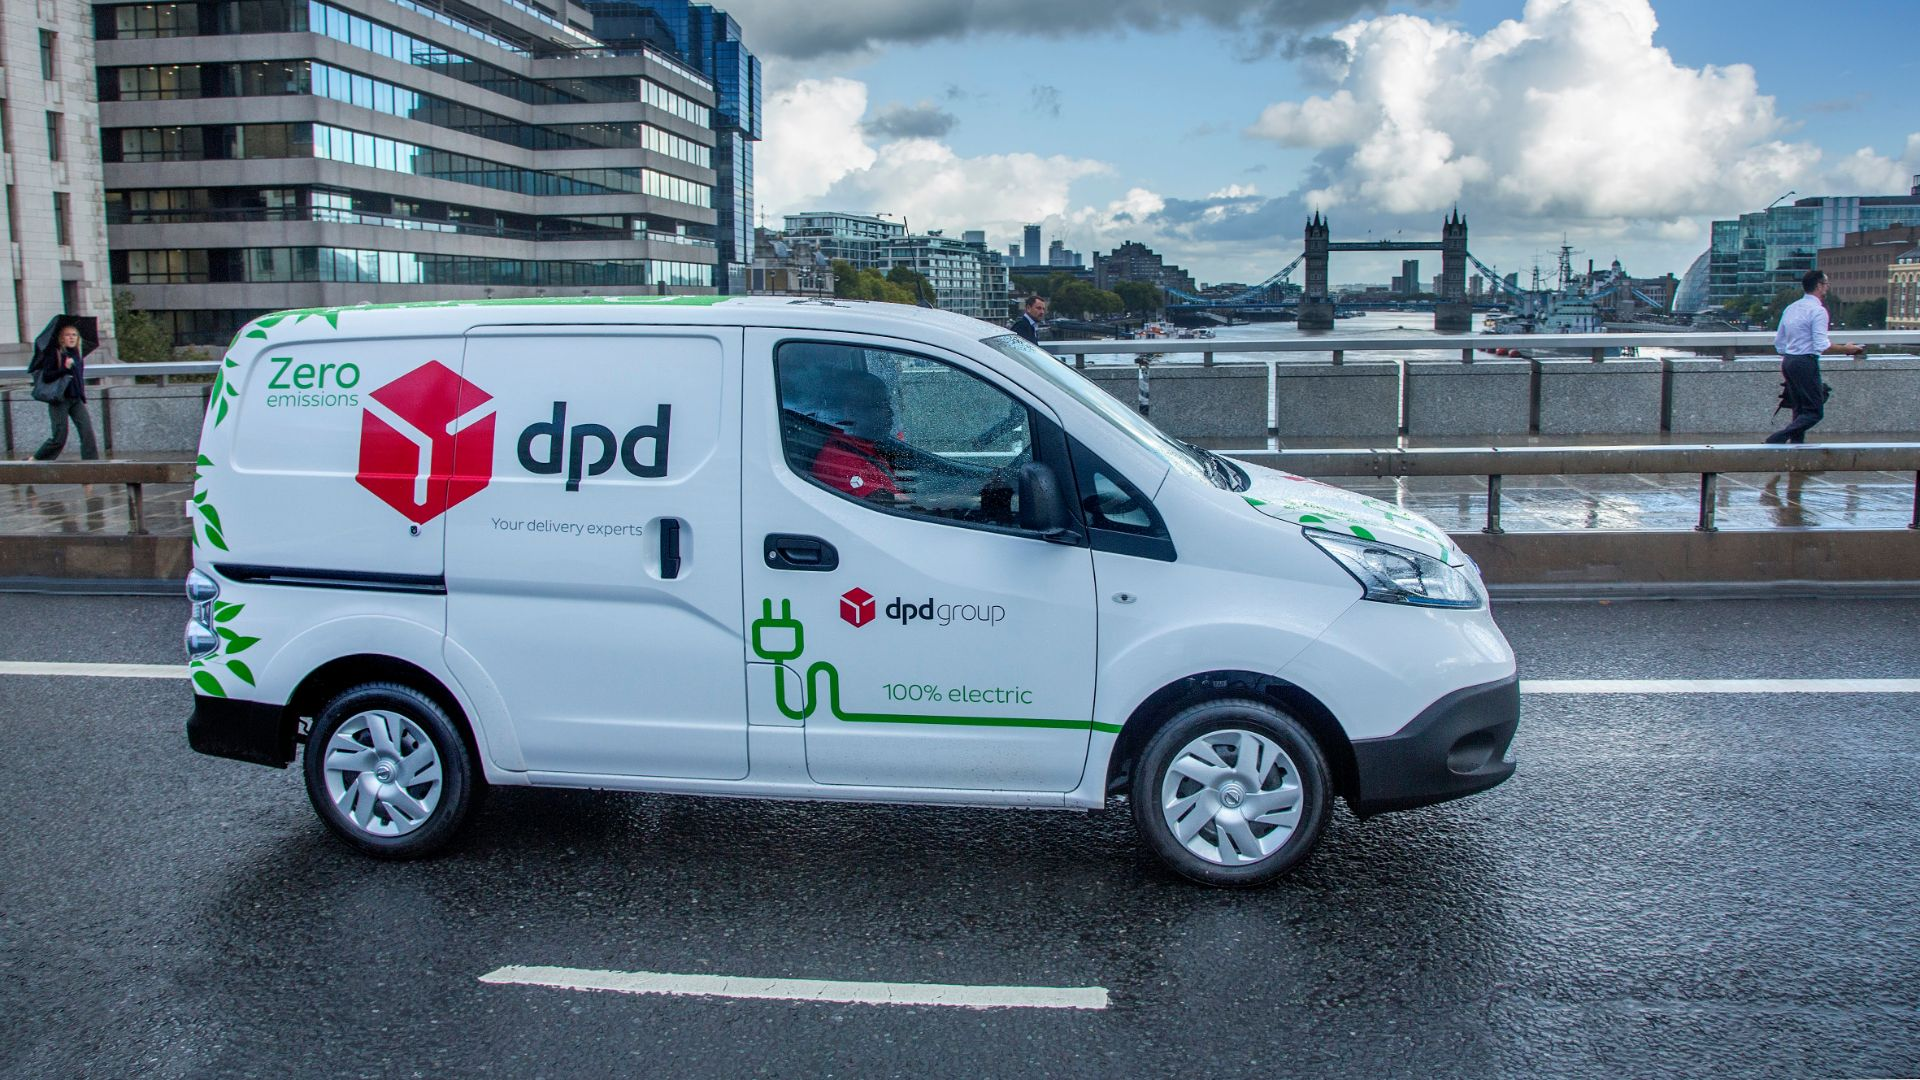 DPD to take delivery of 300 electric Nissan vans